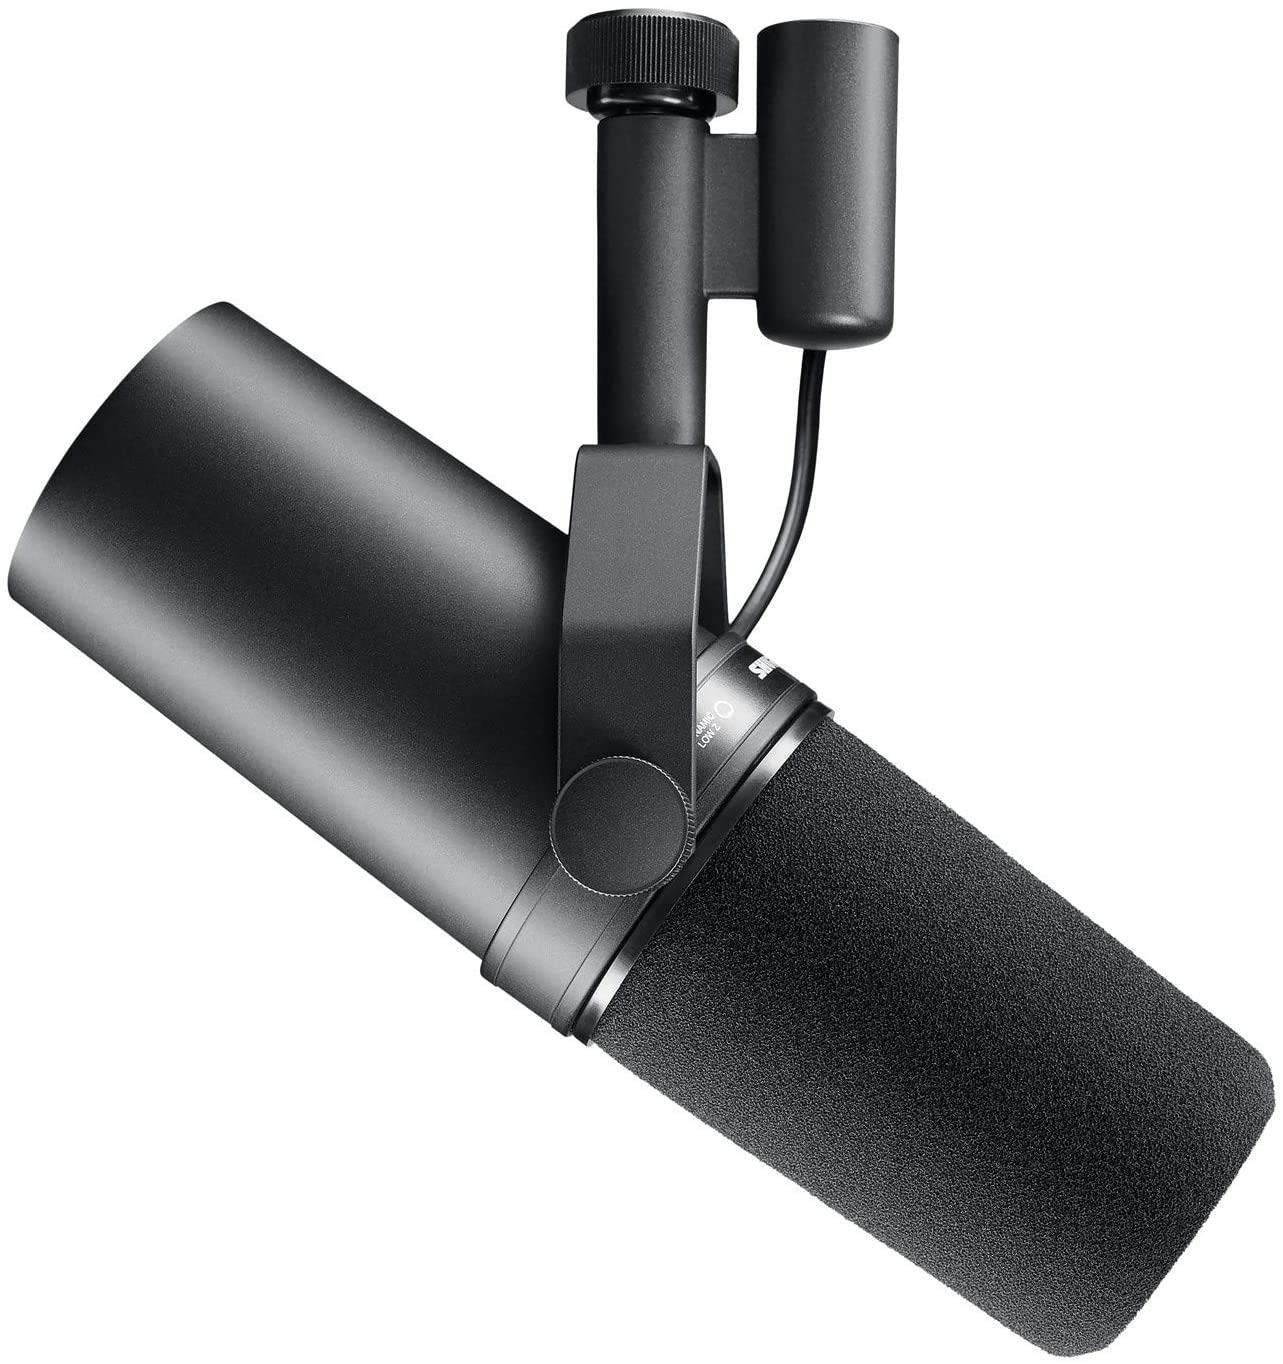 Shure SM7B Vocal Dynamic Microphone for Broadcast, Podcast & Recording, XLR Studio Mic for Music & Speech, Wide-Range Frequency, Warm & Smooth Sound, Rugged Construction, Detachable Windscreen - Black